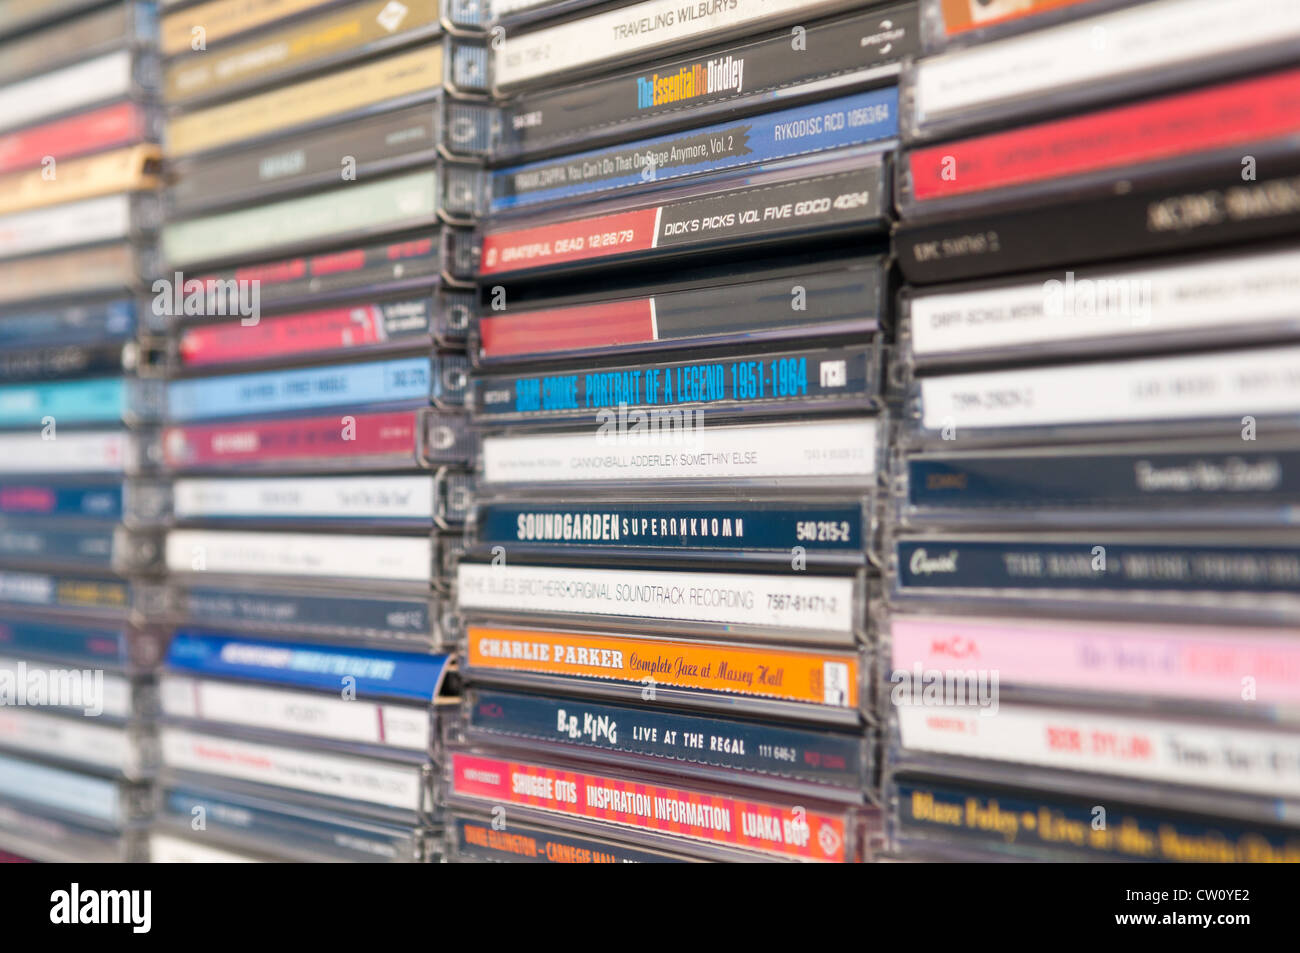 A row of music albums - Stock Image